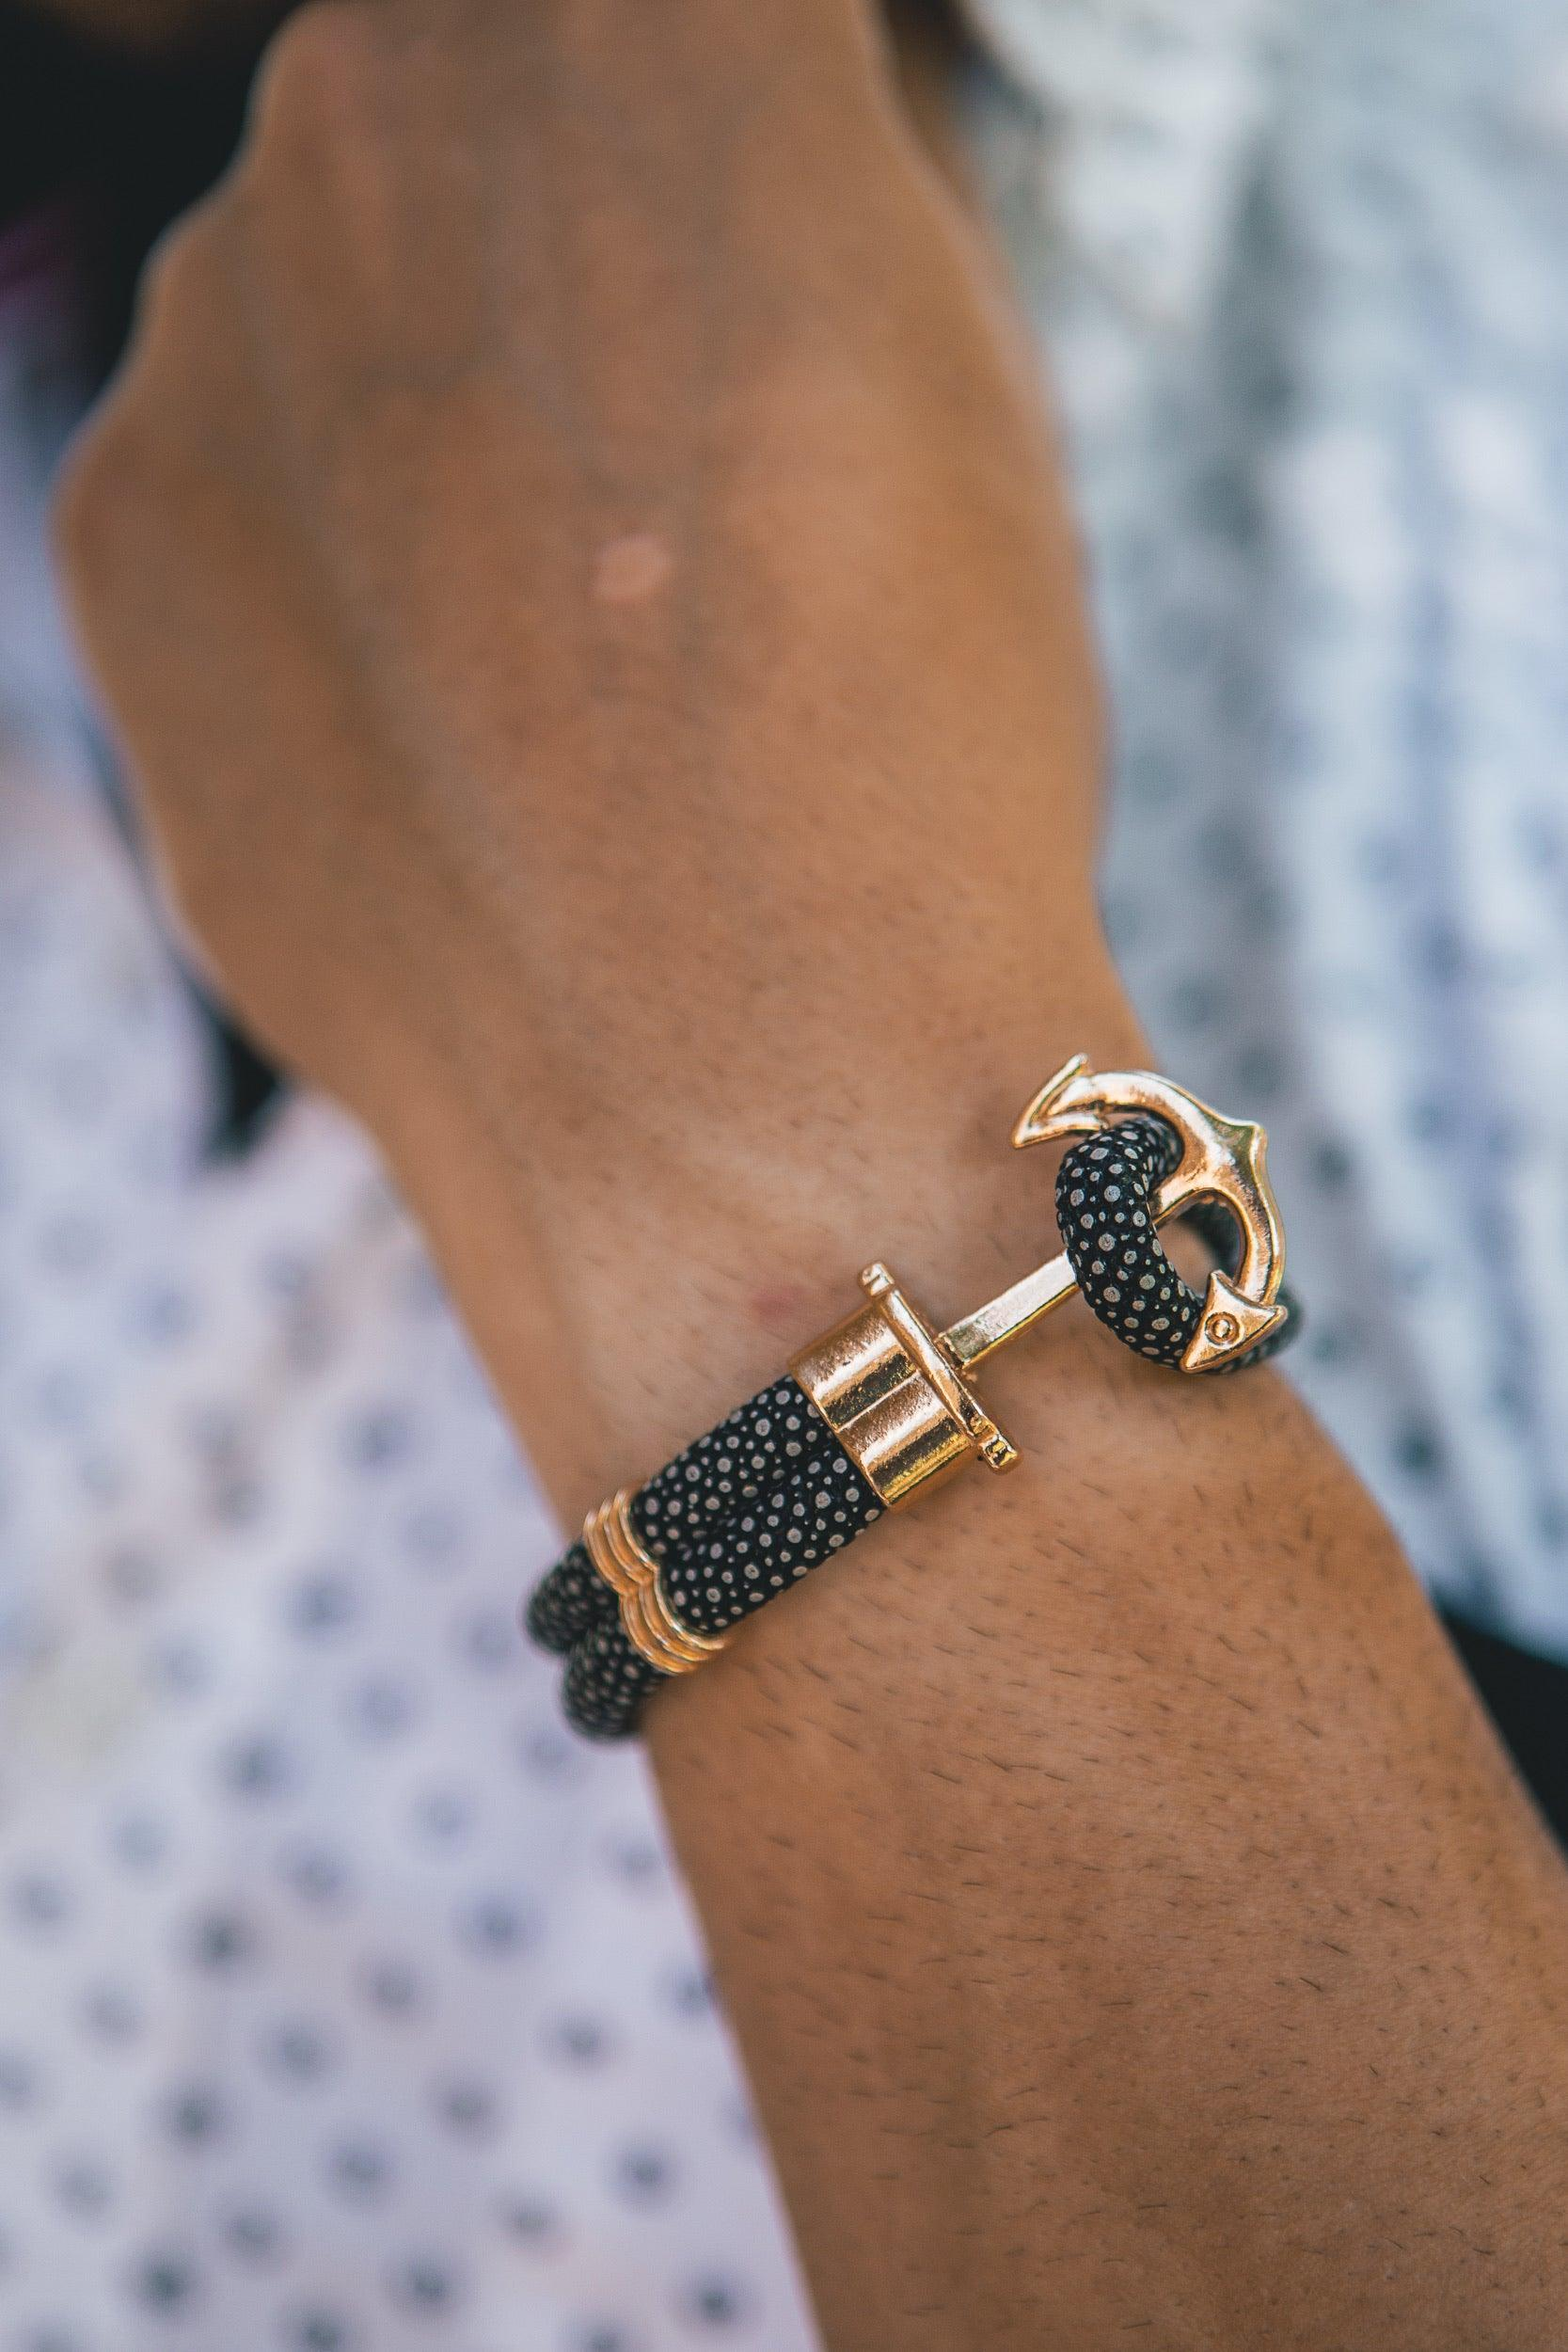 The Navy Blue/Gold Anchor Bracelet